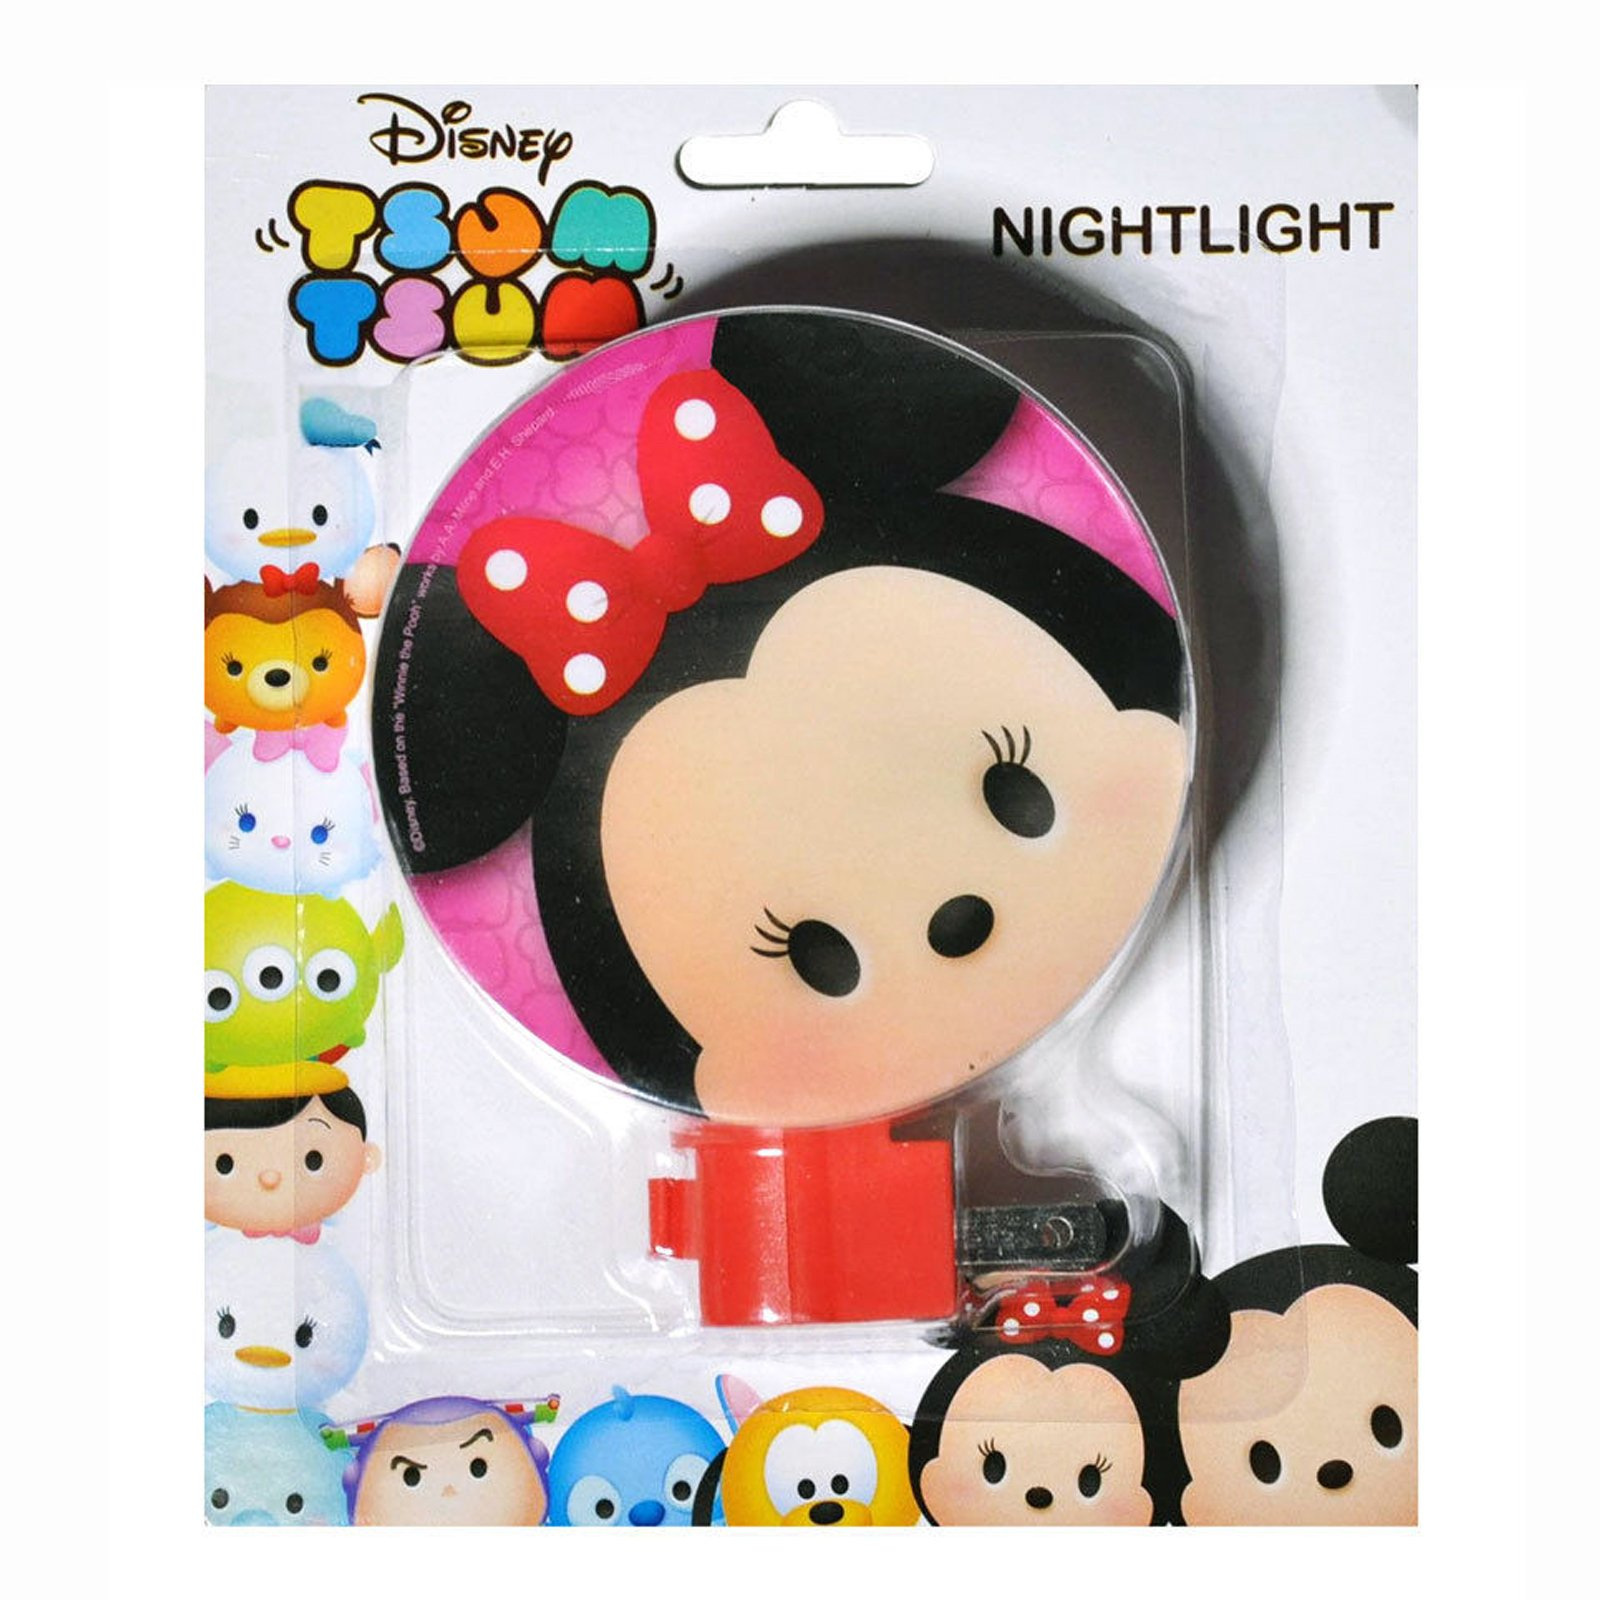 8a5909afcdf Disney Tsum Tsum Night Light Kids Bedroom Home Decor Minnie Mouse - Red